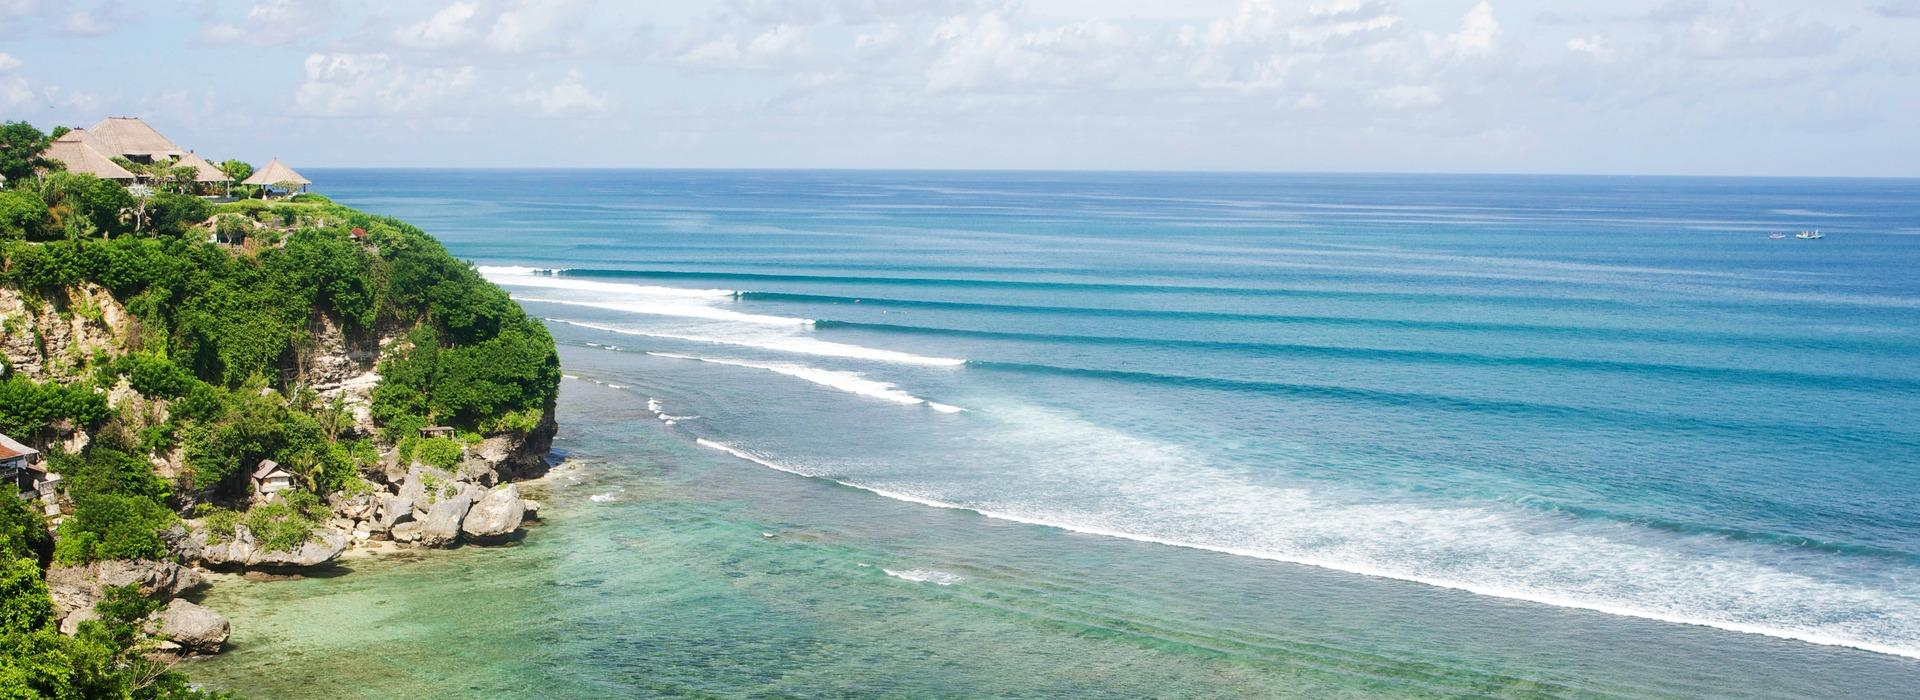 Impossible Beach Bali - Uluwatu Surf Spots